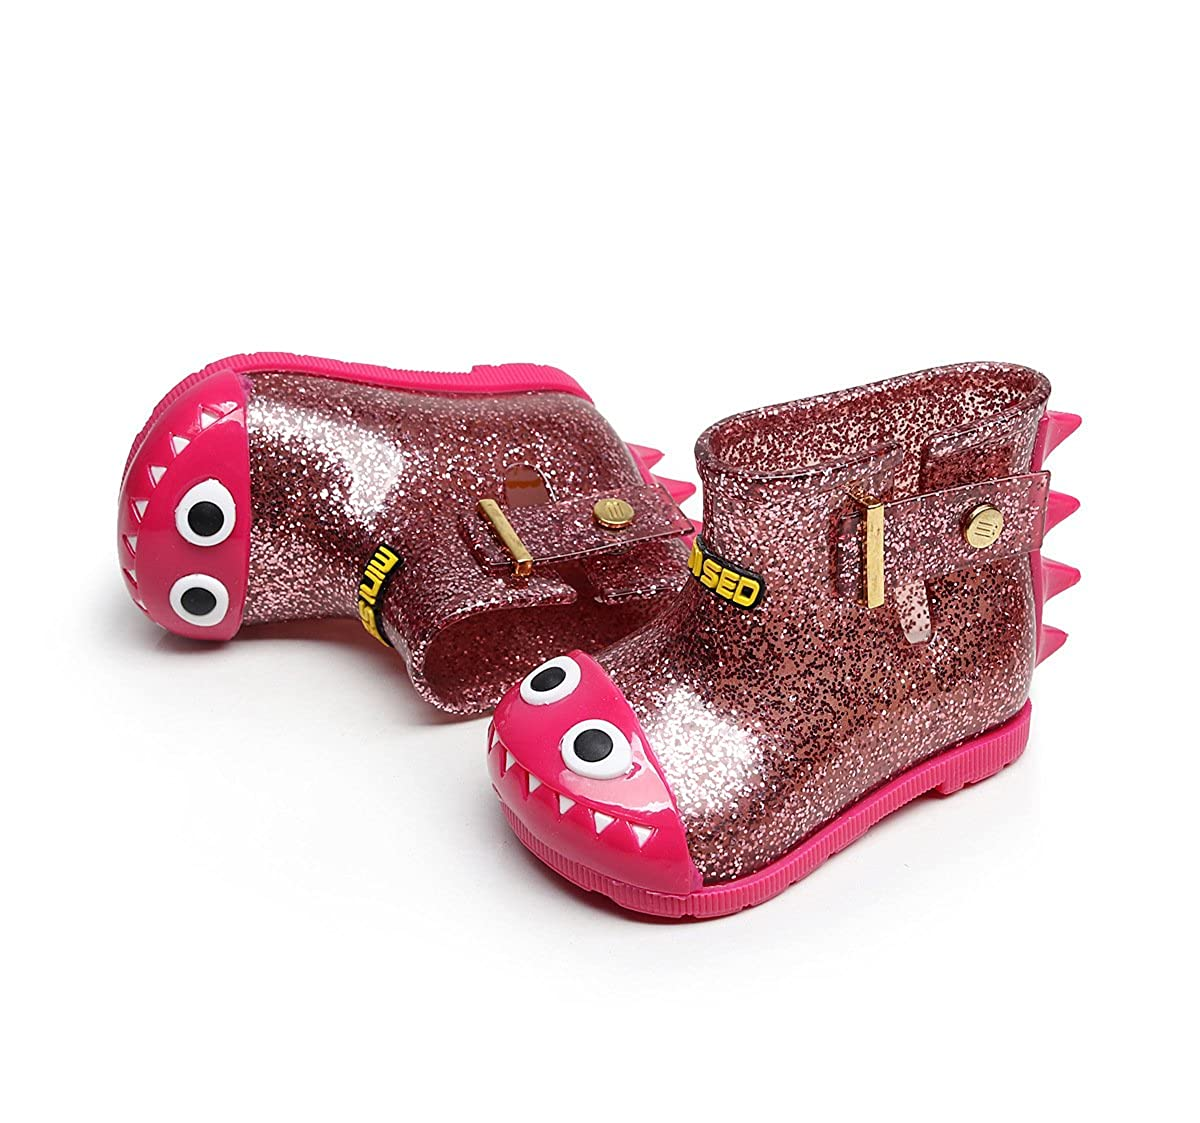 Toddler Children Kids Baby Boy Girl Dinosaur Waterproof Shoes Rain Boots Booties